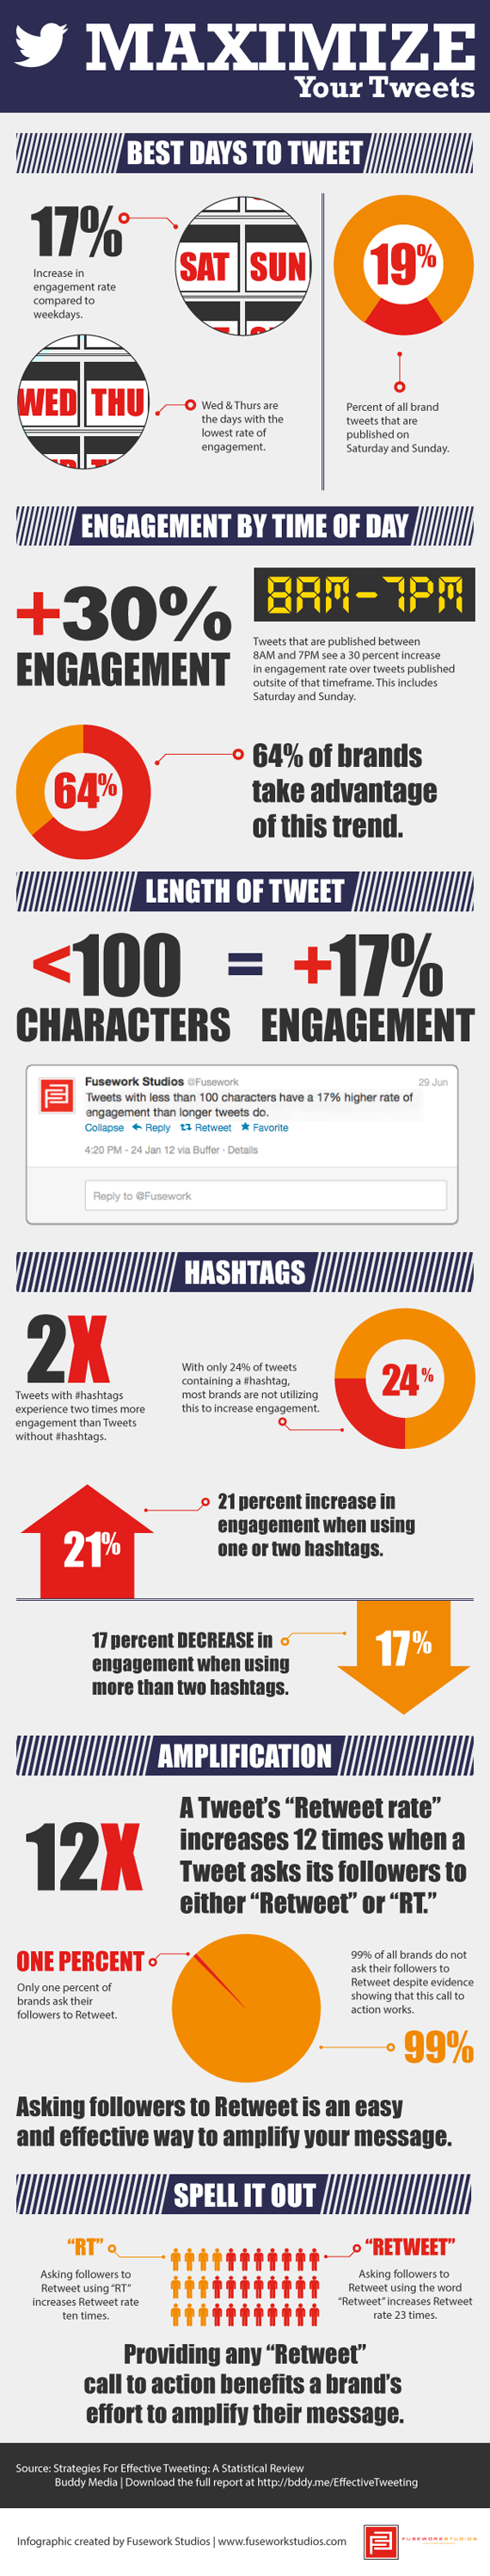 Maximize Twitter-infographic